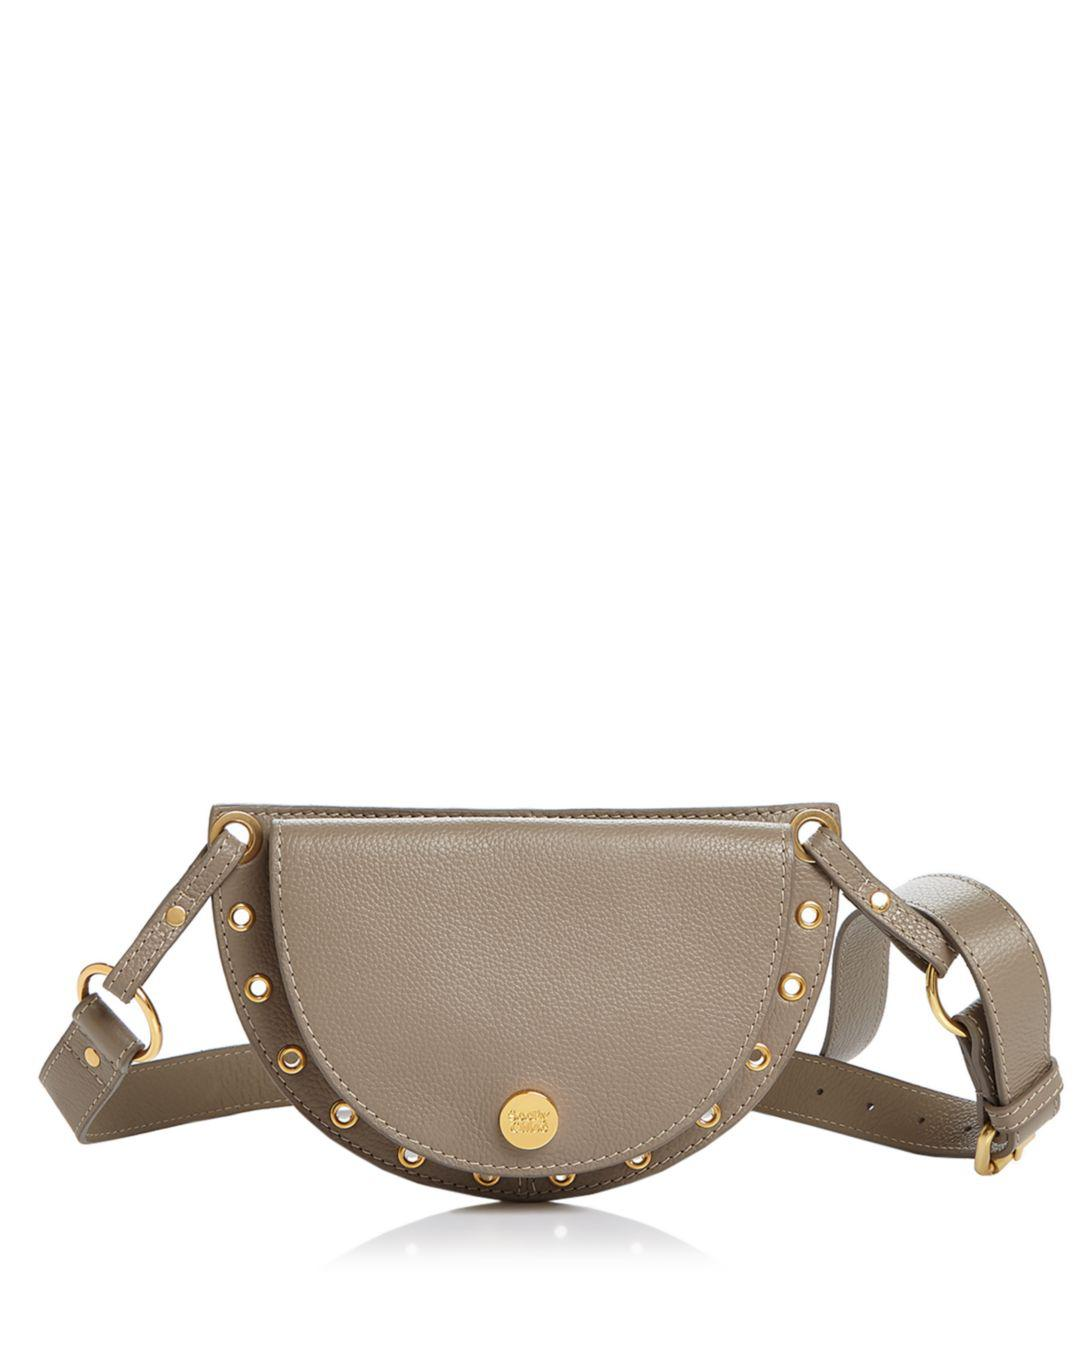 5e6fcd0e20 see-by-chloe-Motty-GrayGold-Kriss-Convertible-Suede-And-Leather-Belt-Bag .jpeg